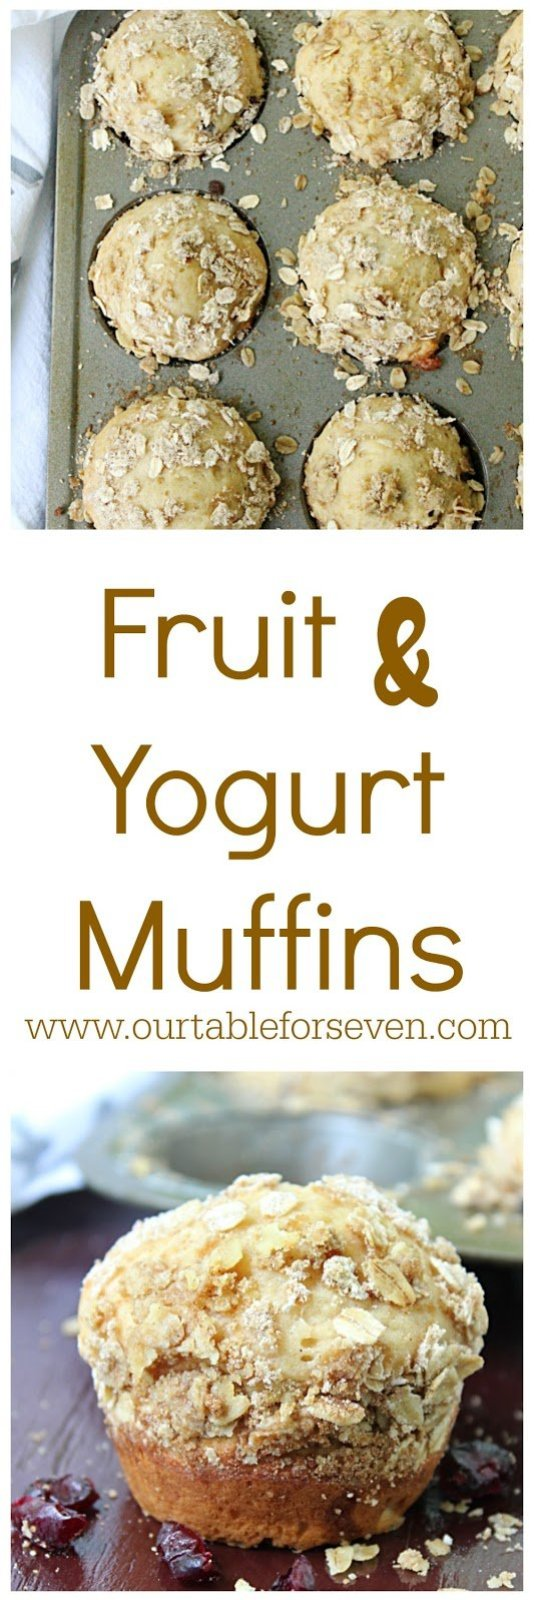 Fruit and Yogurt Muffins from Table for Seven: Delicious and versatile! Loaded with creamy yogurt and your choice of fruit, these muffins will soon be your new favorite breakfast.